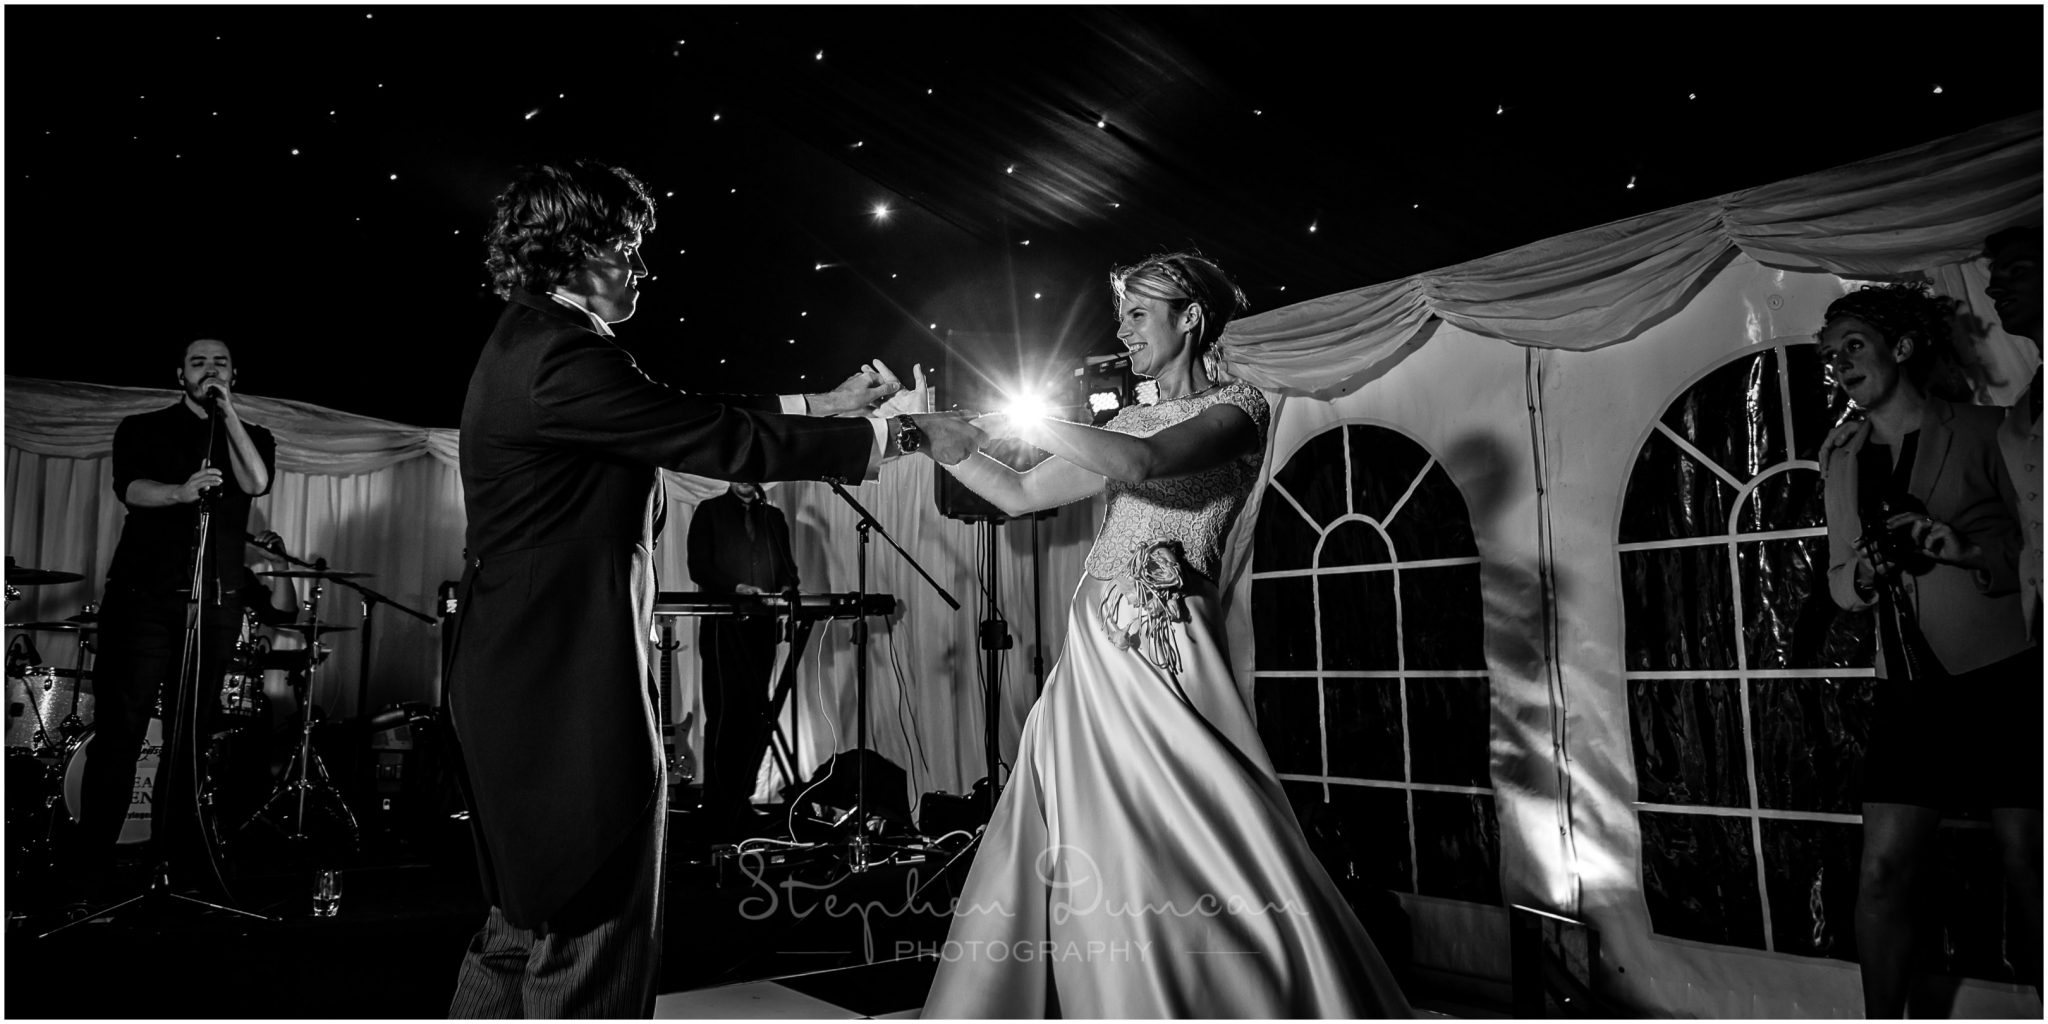 Lymington wedding photography black and white first dance photo